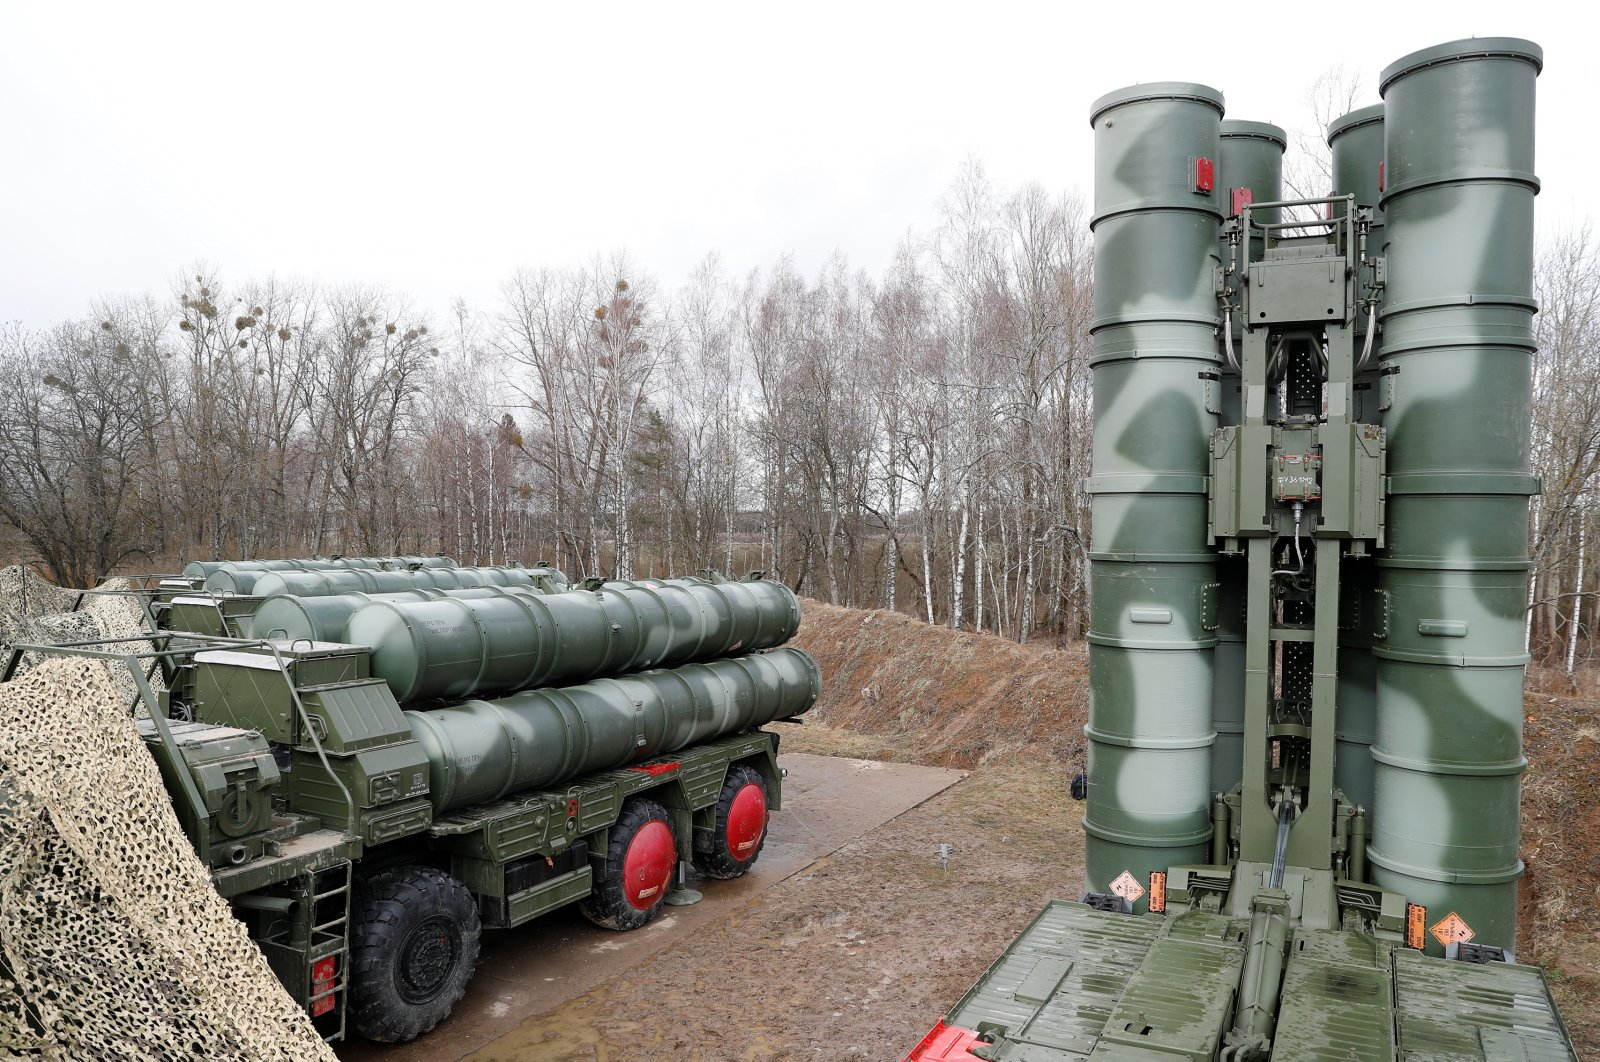 """A view shows S-400 """"Triumph"""" surface-to-air missile system after its deployment near Kaliningrad, Russia, March 11, 2019. (Reuters Photo)"""